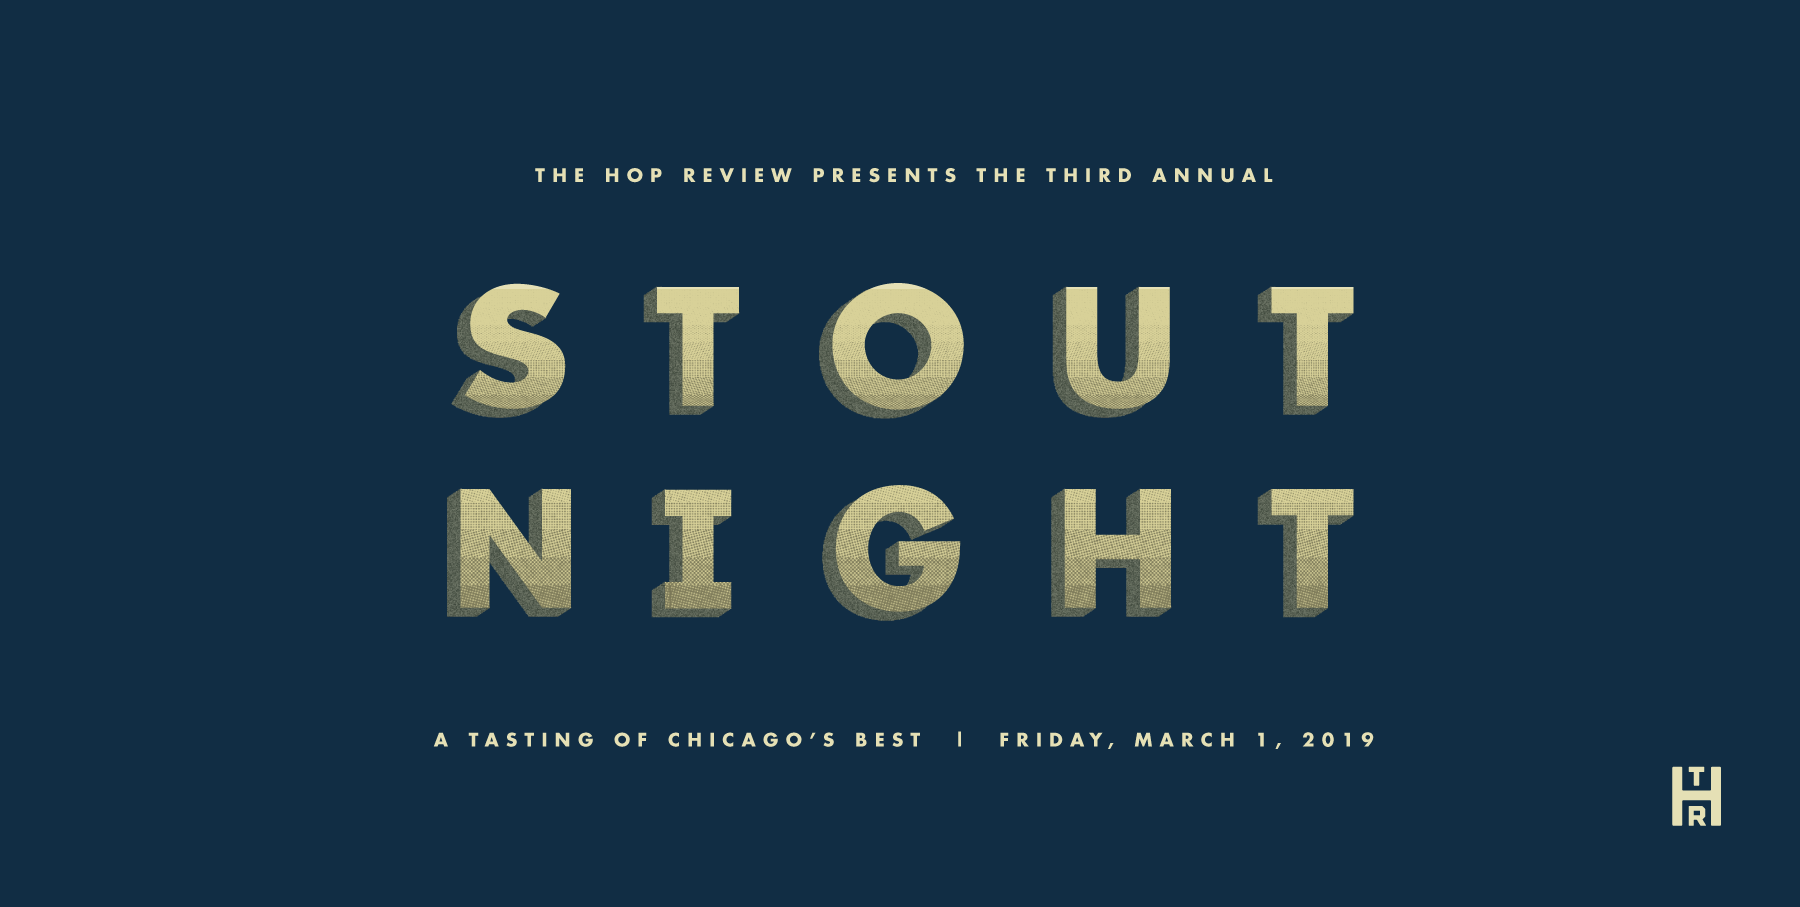 The Hop Review's Third Annual Stout Night